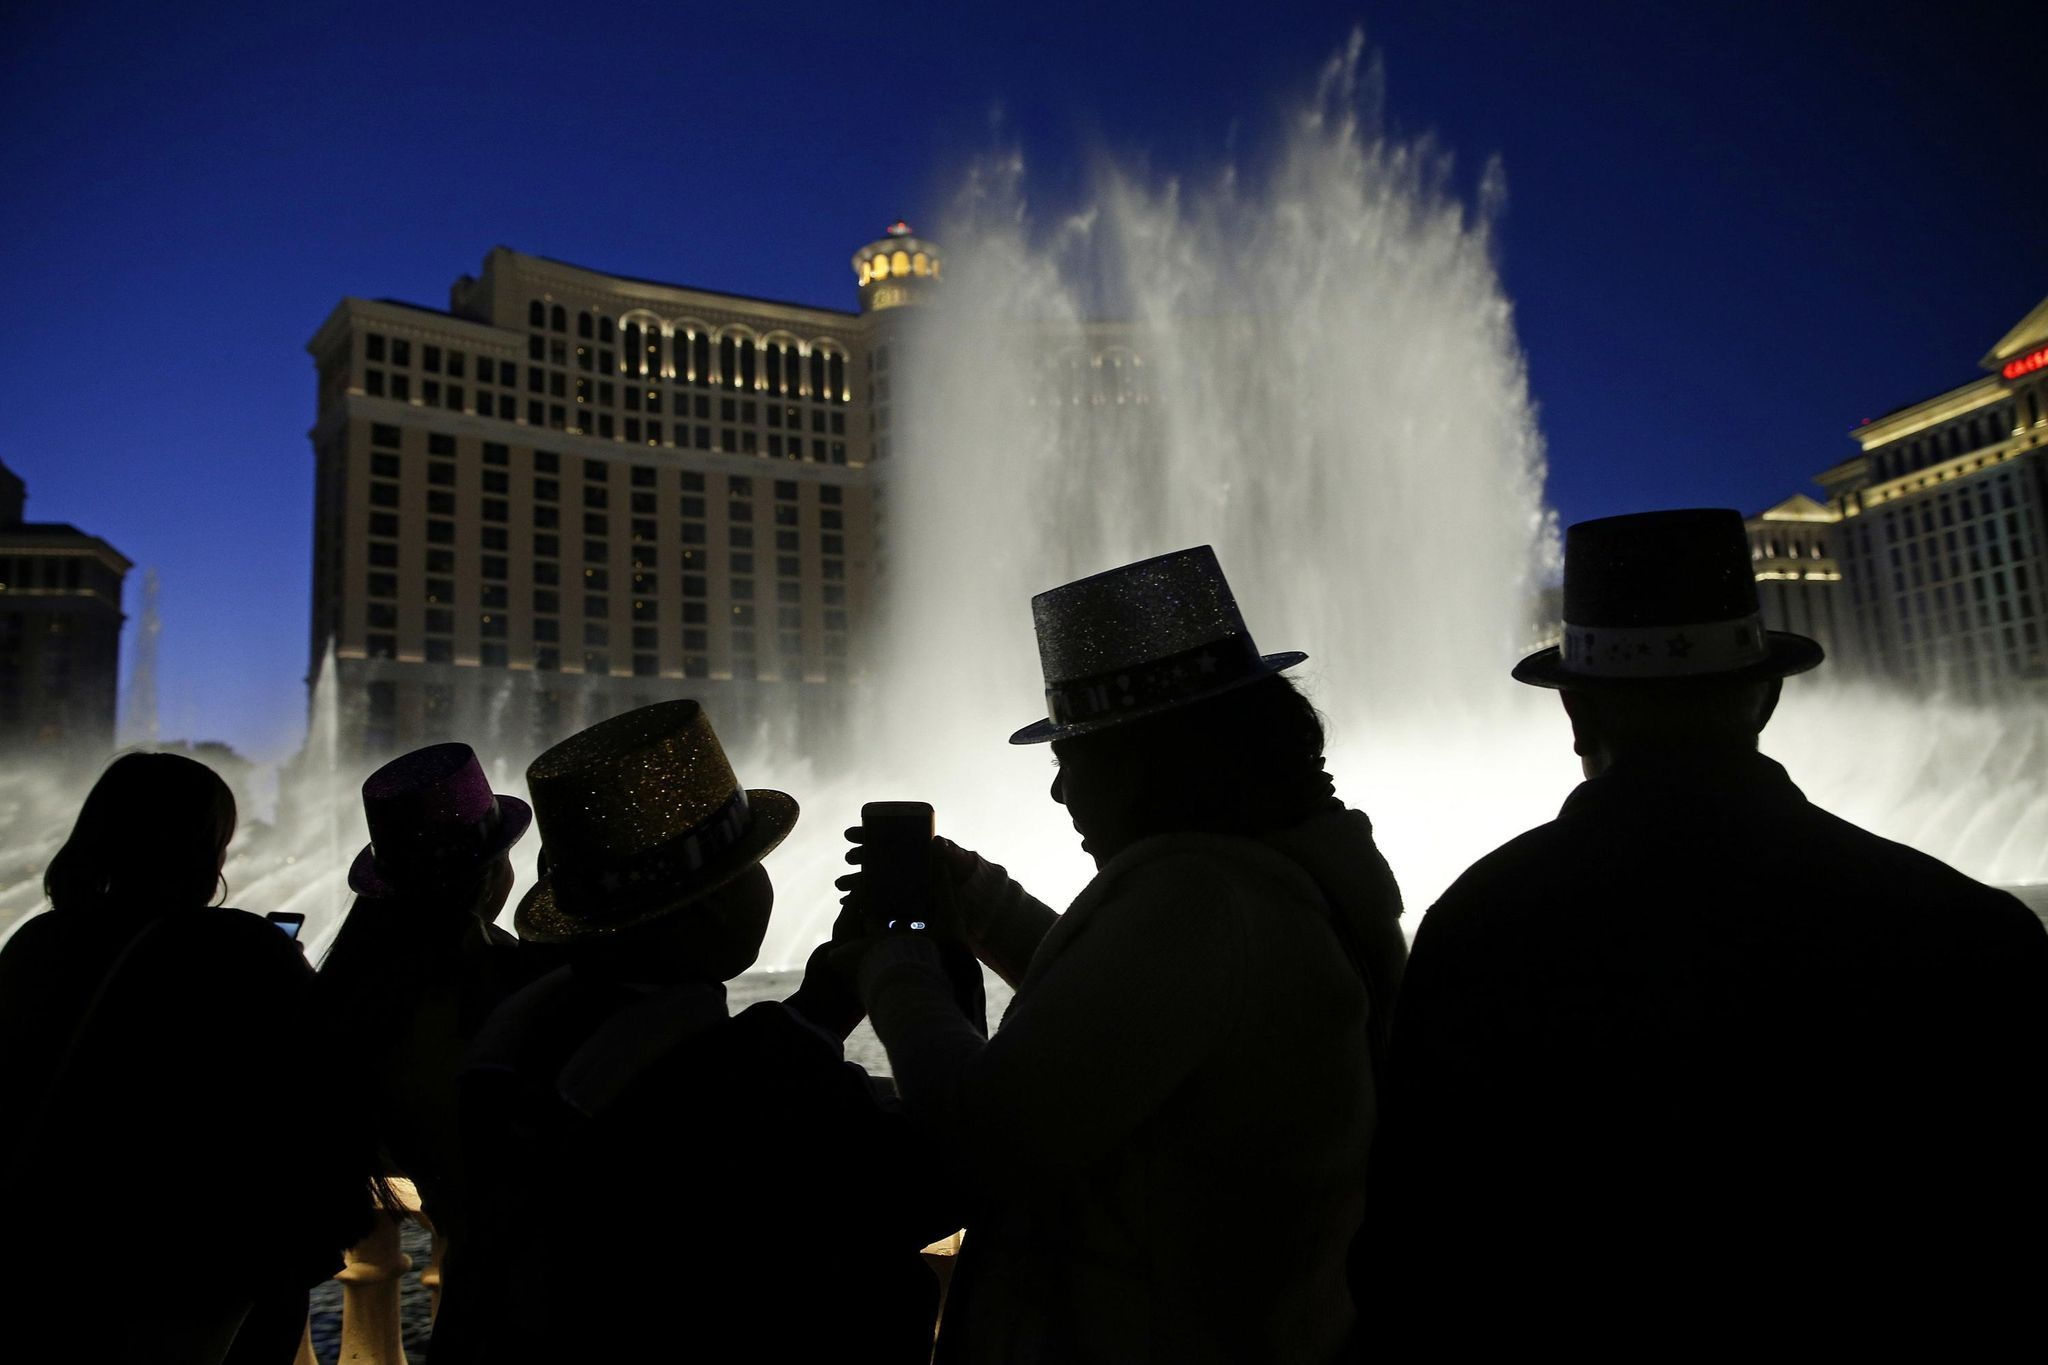 Las Vegas to 2019 with superstars, fireworks show